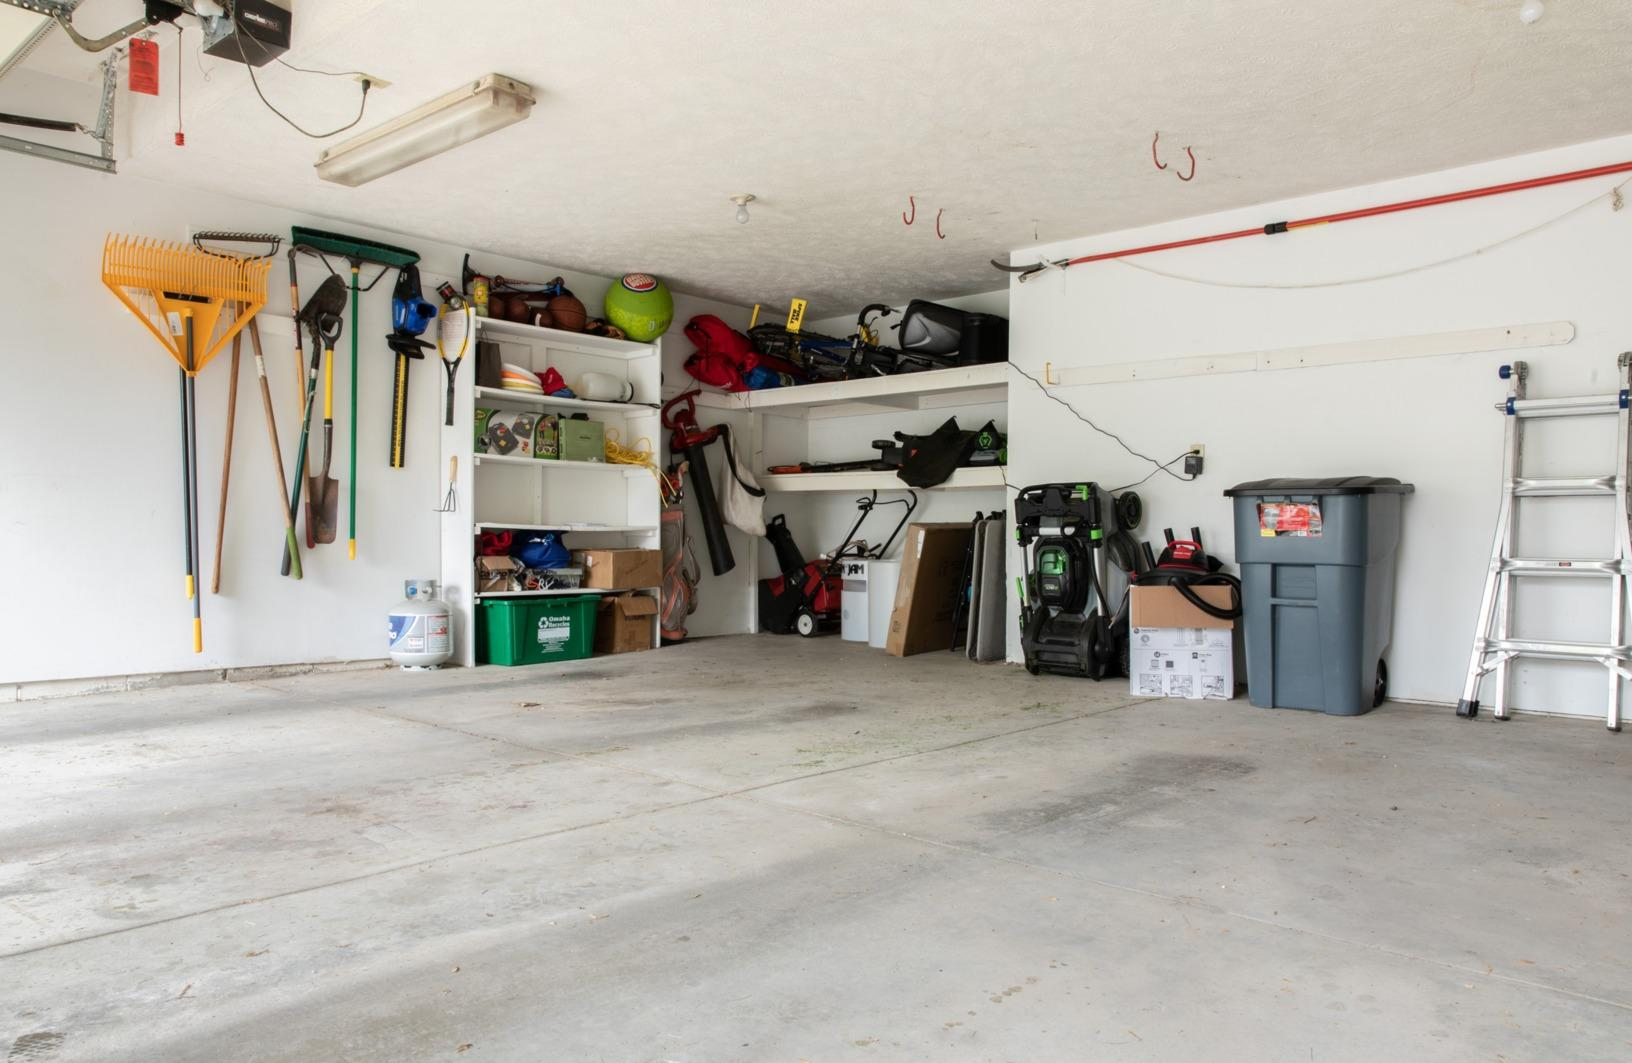 Gear Filled Garage Gets Lifetime Transformation in Lewes, DE - Before Photo